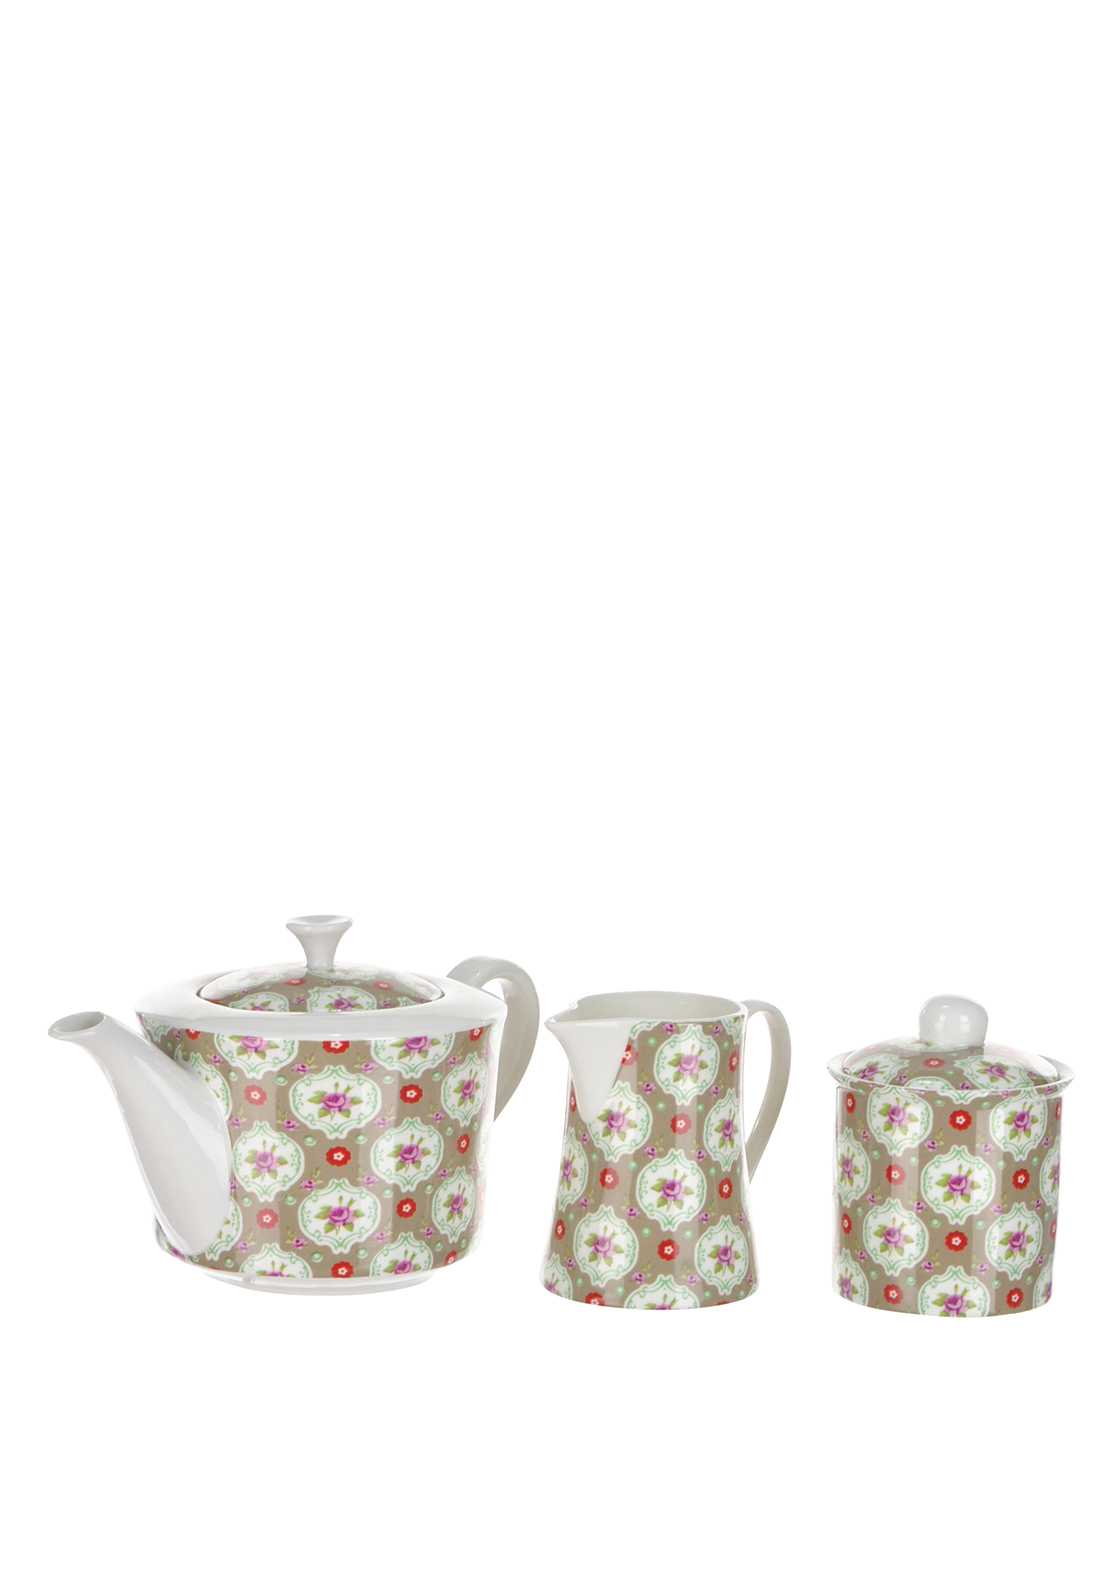 Shannon Bridge Ireland Buds 3 Piece Tea Set, White/Multi floral Design